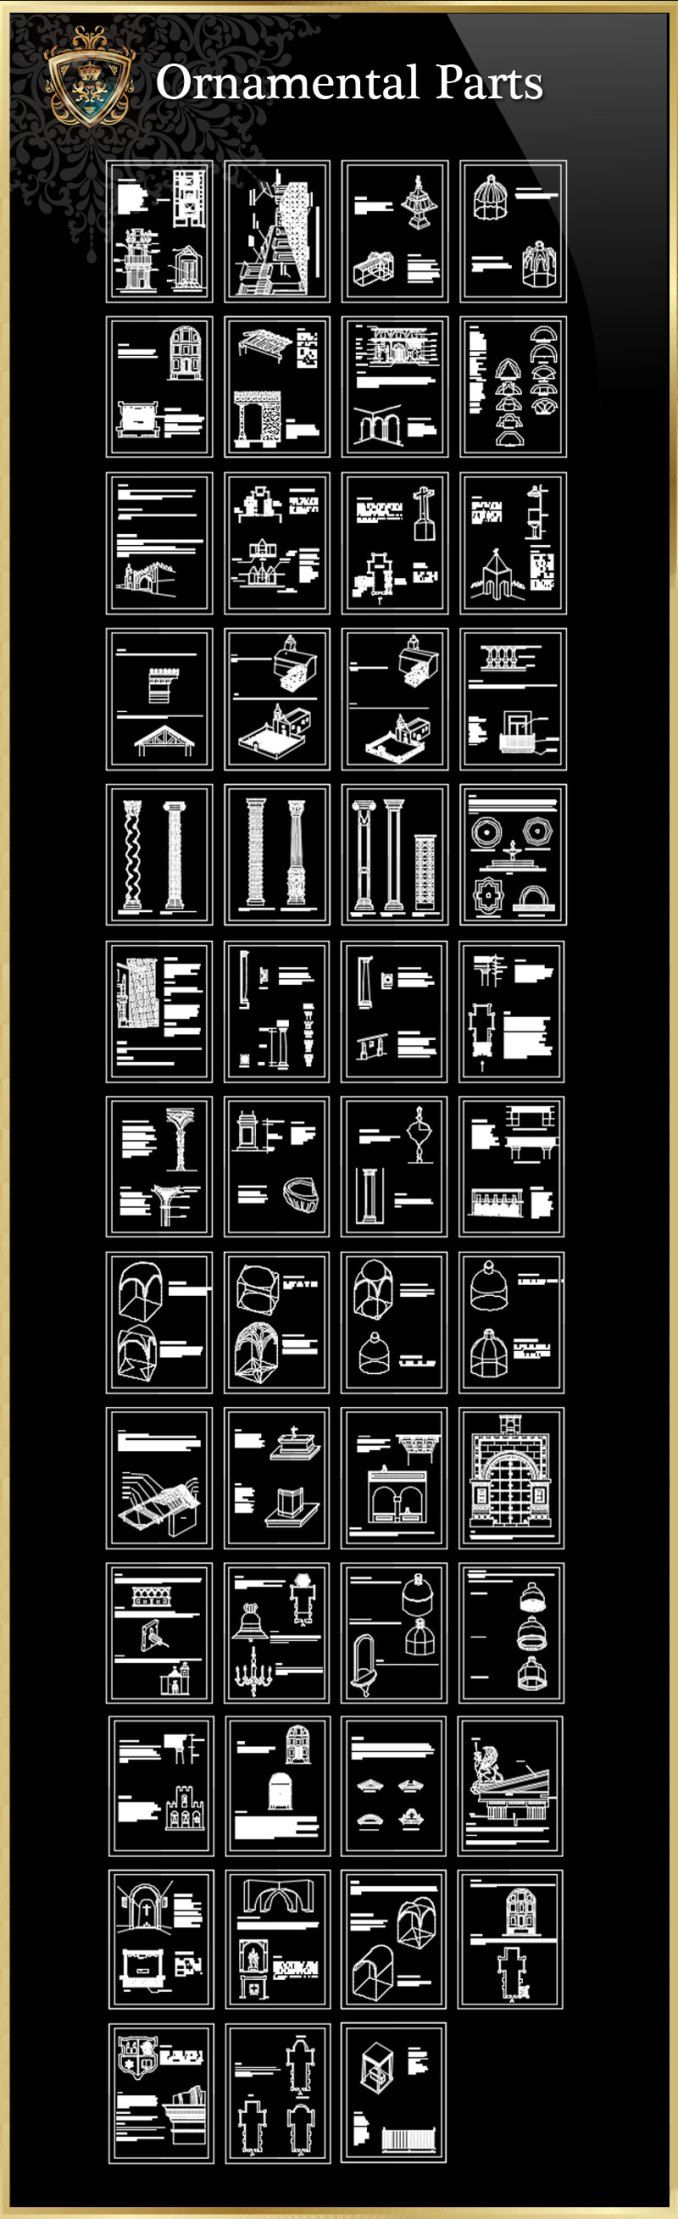 26 best ☆【Download Ceiling CAD Details Drawings】☆ images on ...